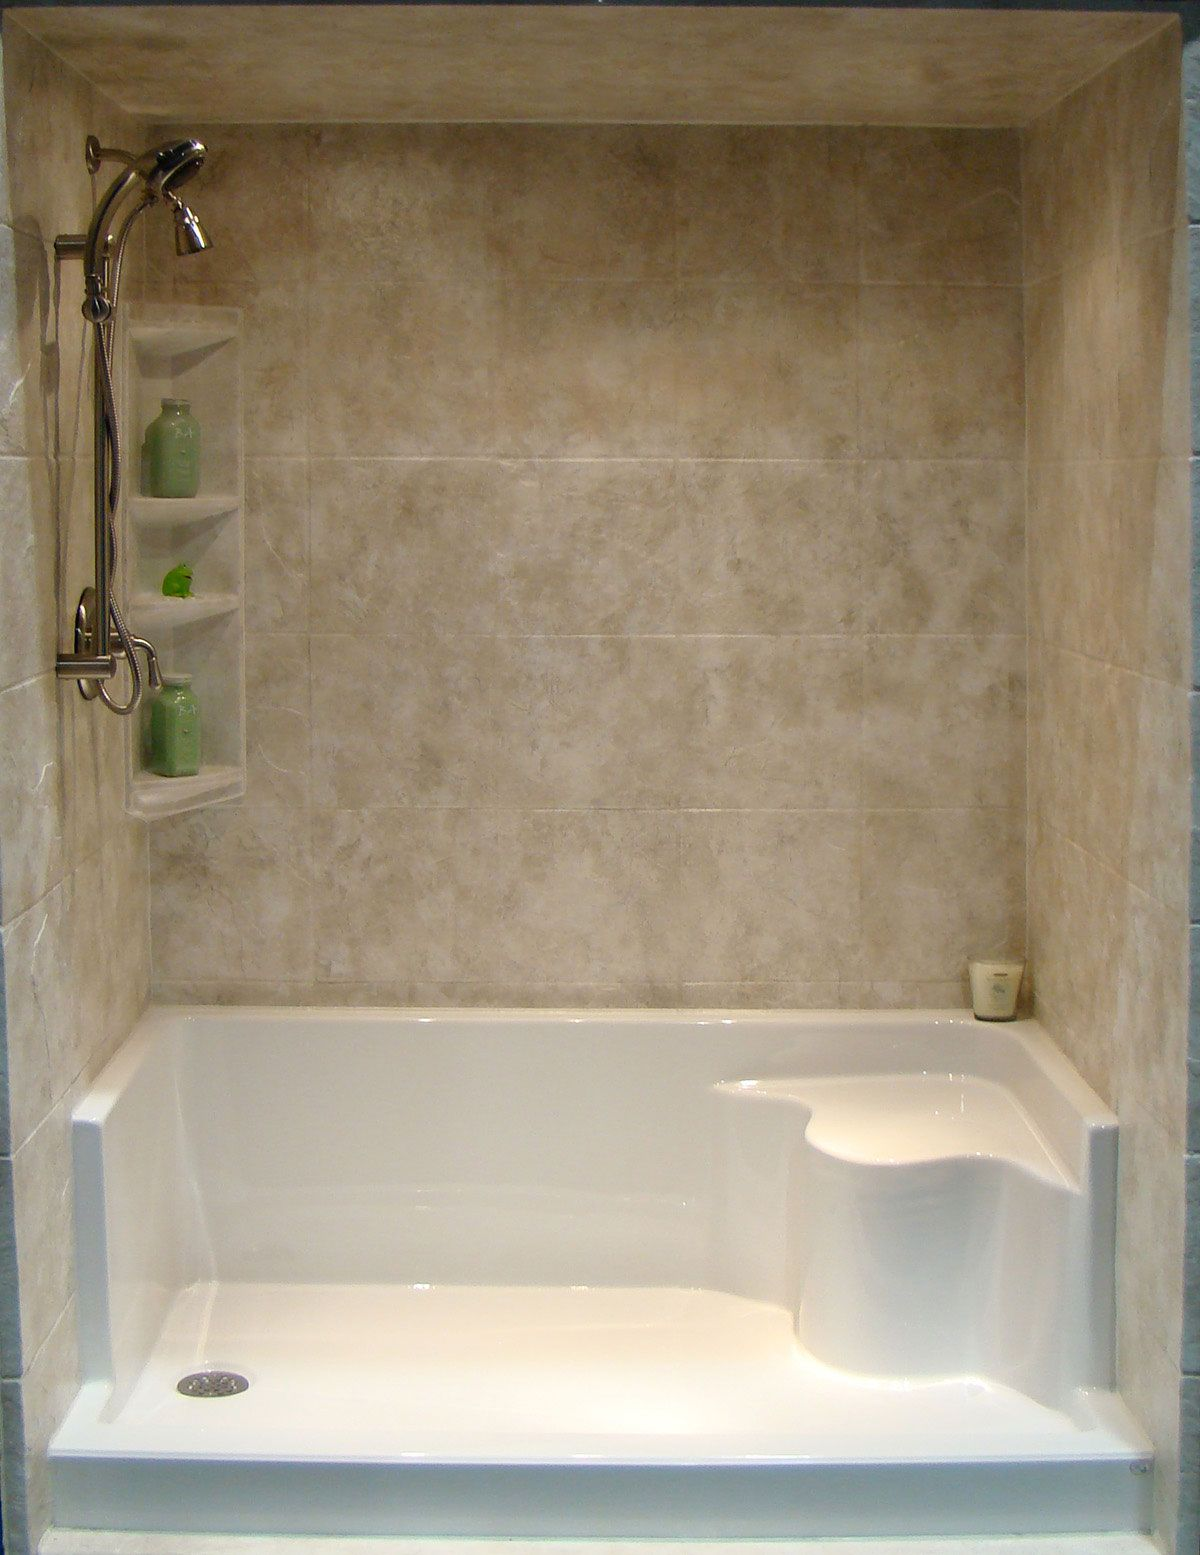 Tub an shower conversion ideas bathtub refinishing tub to shower conversions rebath Bathroom remodel with walk in tub